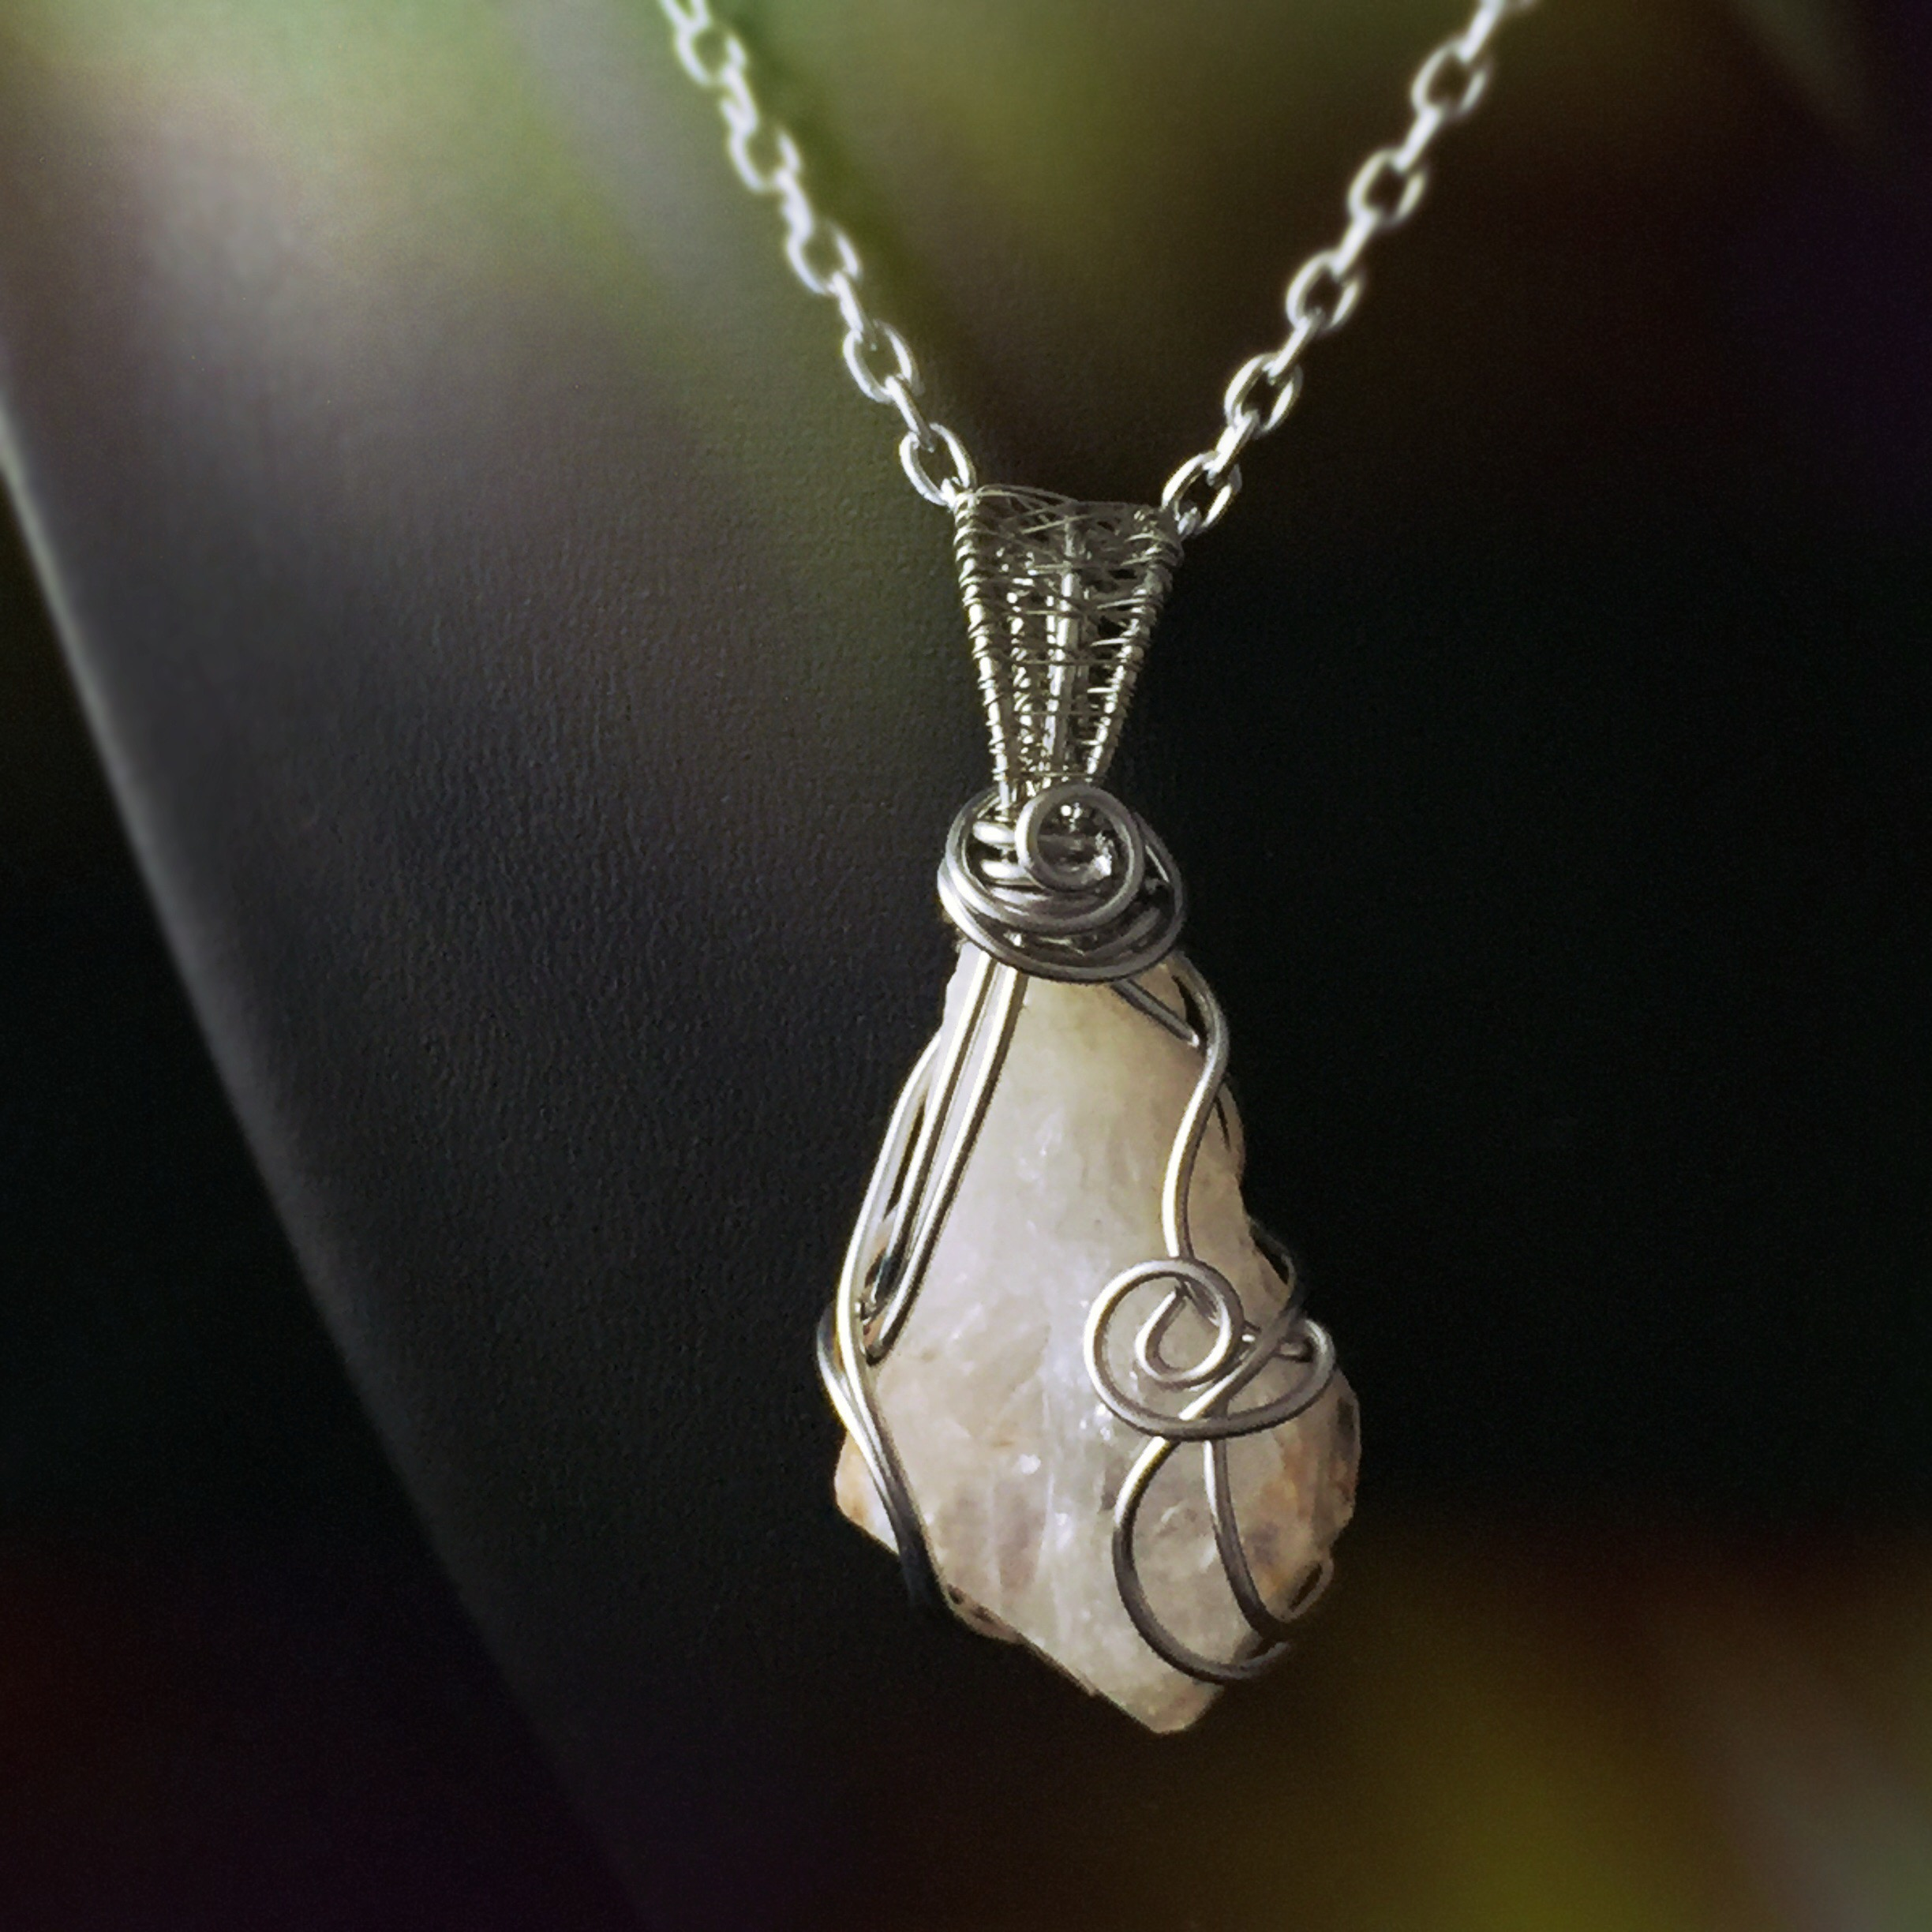 These Citrine pendants will complement your Sagittarius happy vibes SO well! Check them out here!